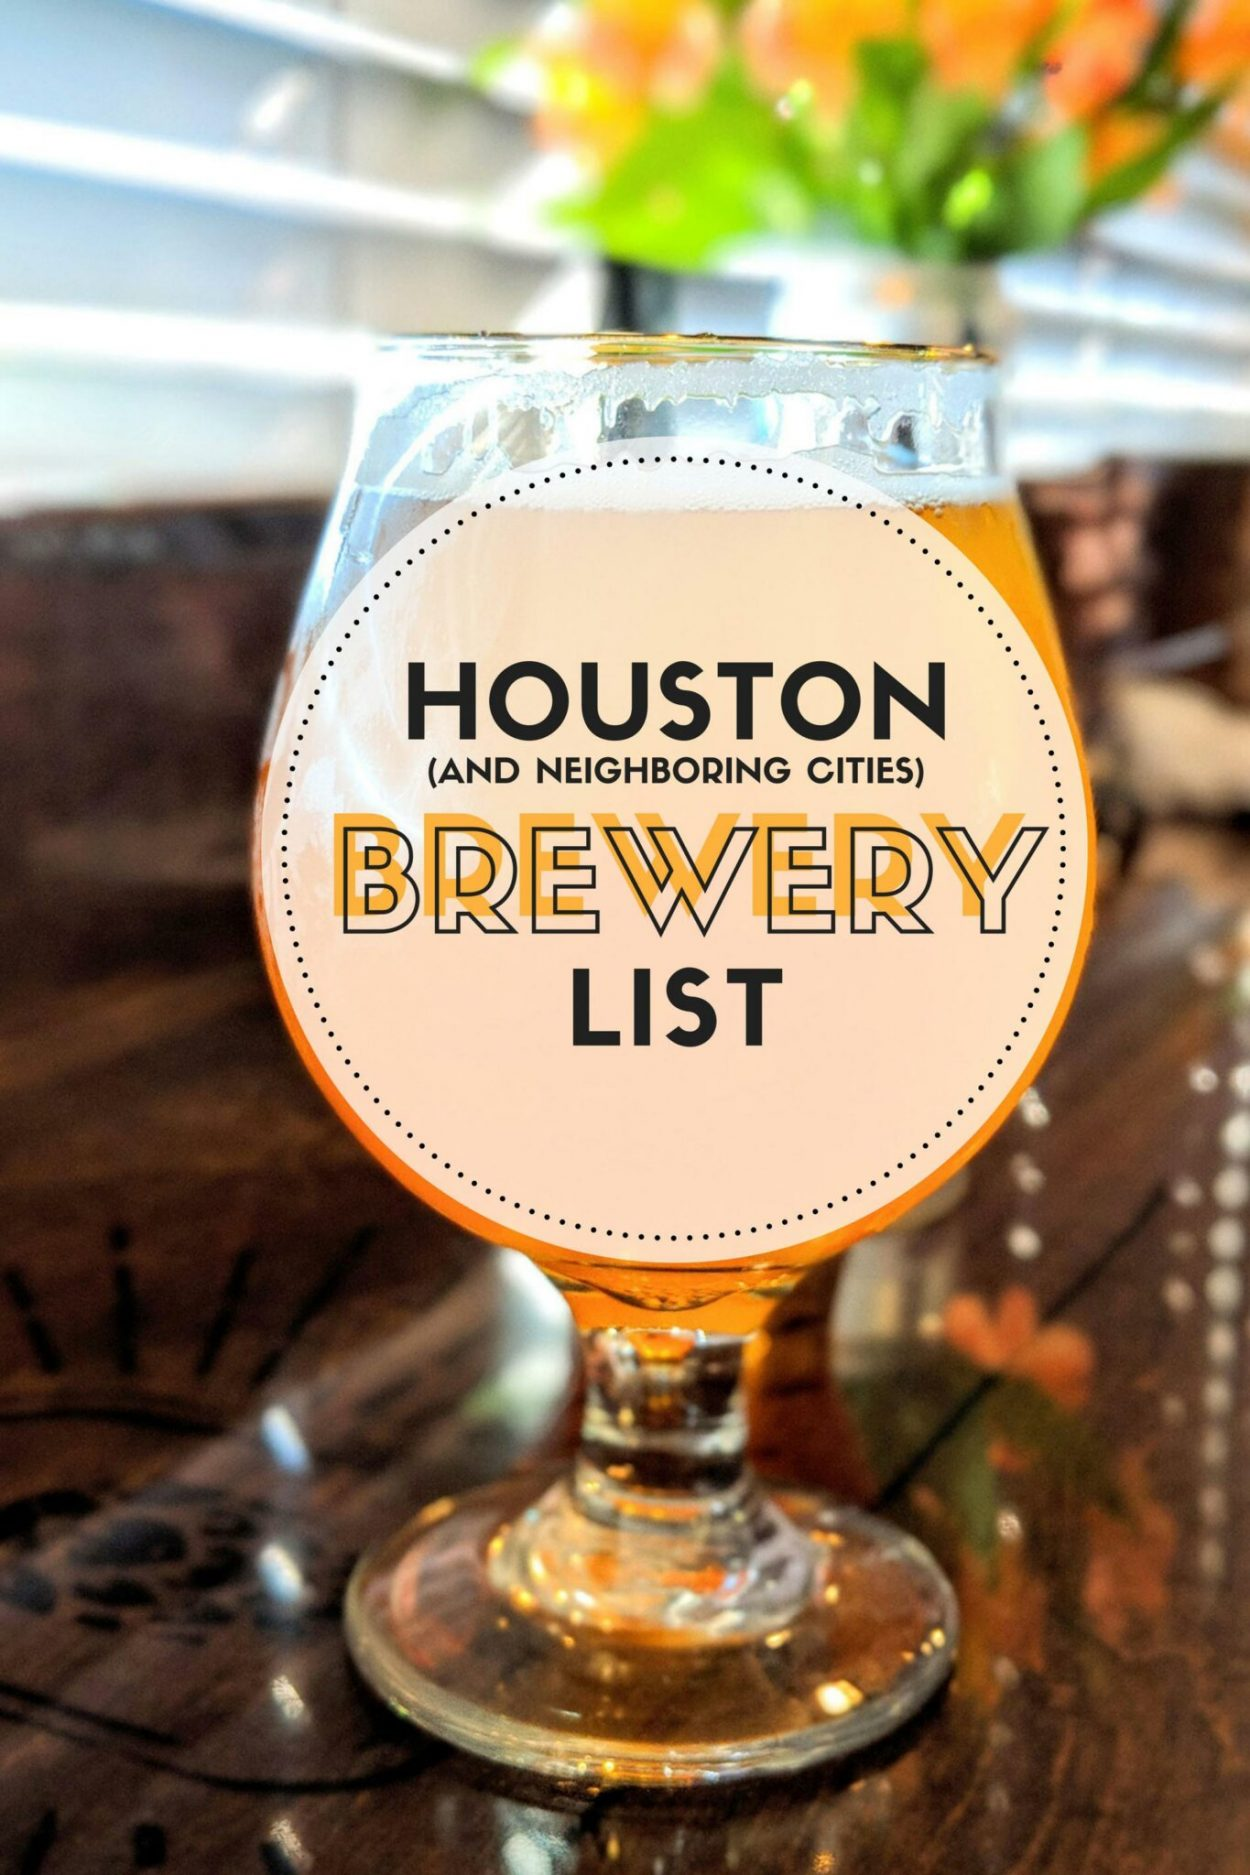 A list of Houston breweries. Along with breweries near Houston in areas like Galveston, Conroe, and near NASA. Updated often! // #ElleTalk #Beer #Travel #Traveling #Brewery #CraftBeer